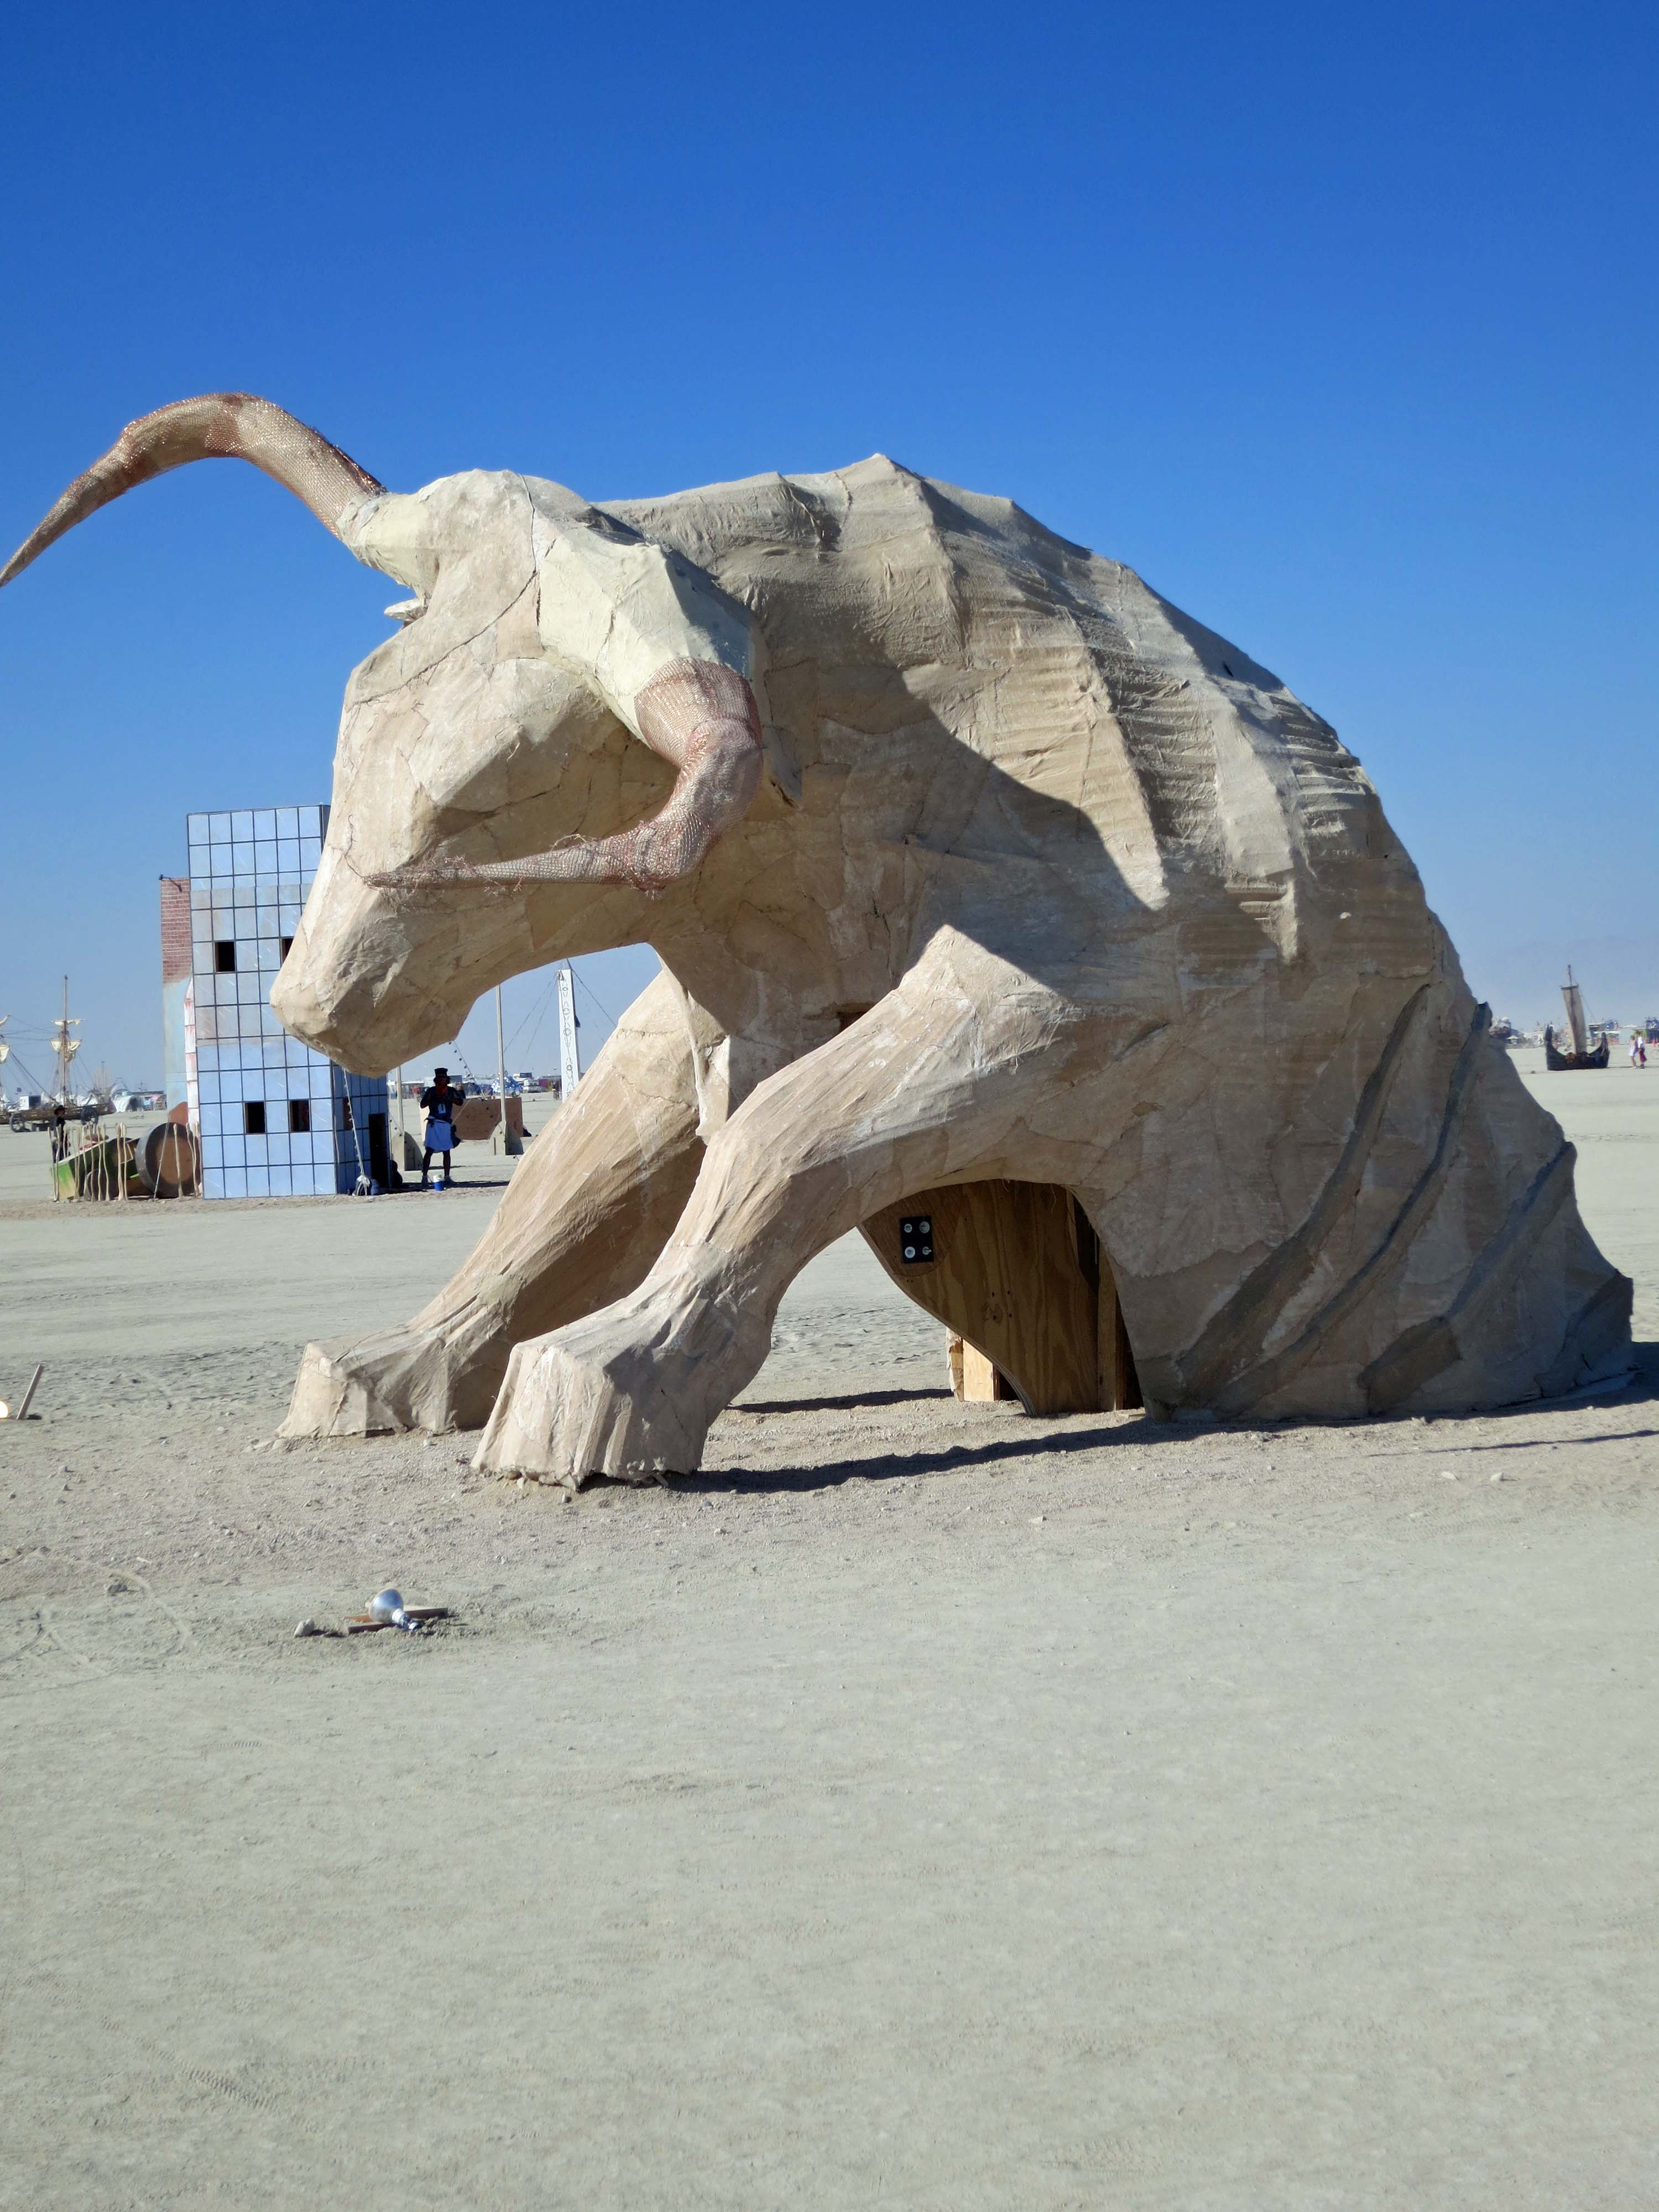 One year, regional groups sponsored art at Burning Man. This impressive bull came out of Texas.